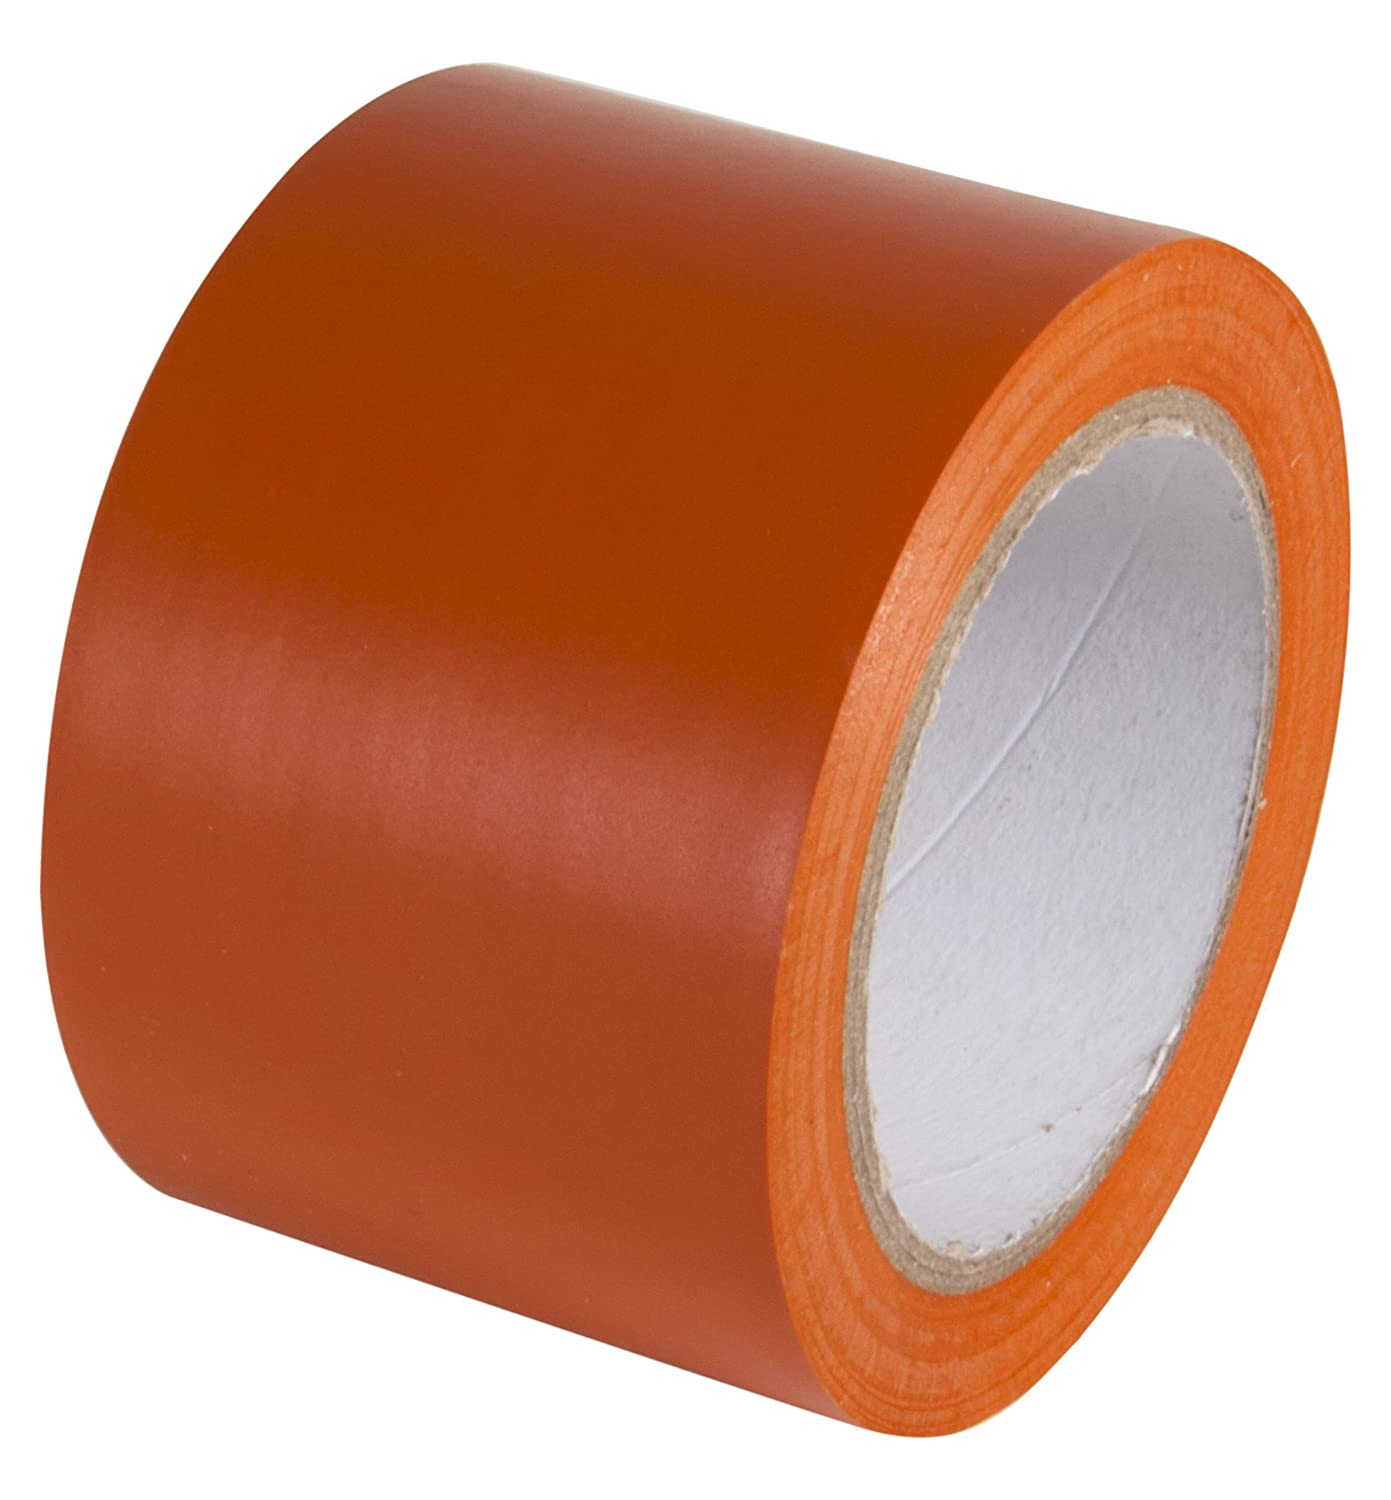 4 x 108 Floors INCOM Manufacturing: Vinyl Aisle Marking Conformable Tape Equipment Safety Orange- Ideal for Walls